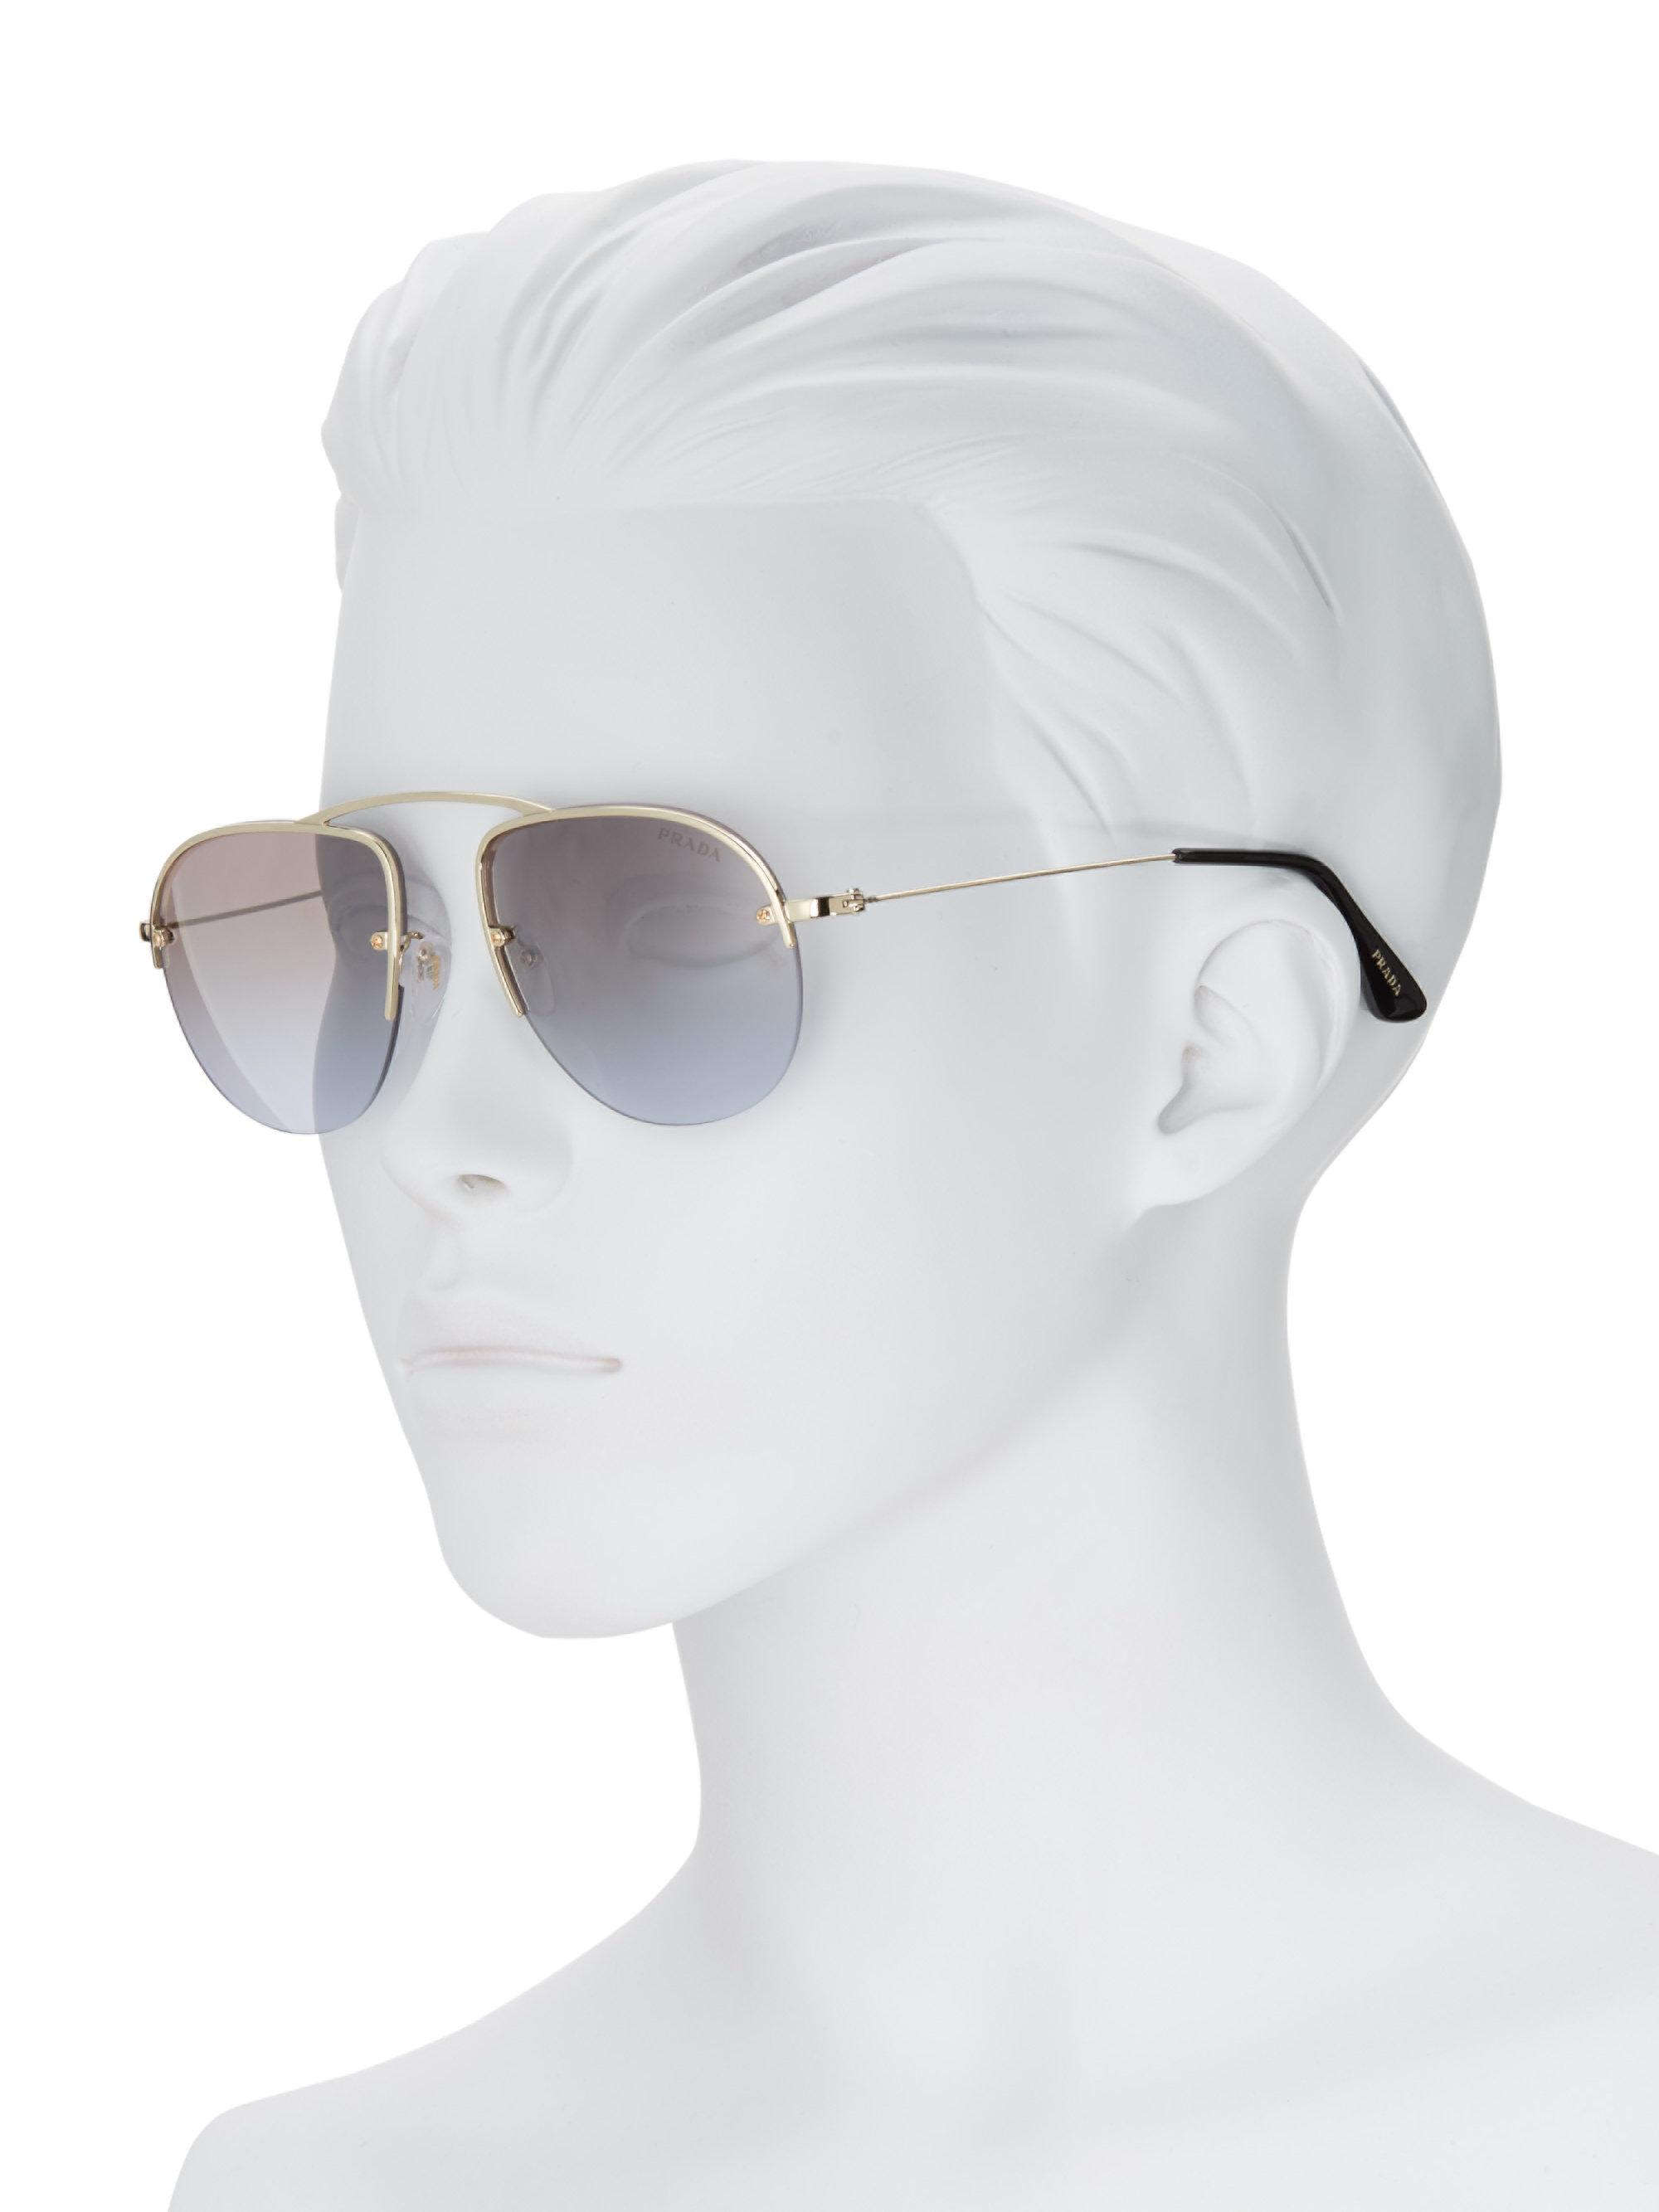 7ed1c8f3a85 Gallery. Previously sold at  Saks Fifth Avenue · Women s Mirrored Sunglasses  ...